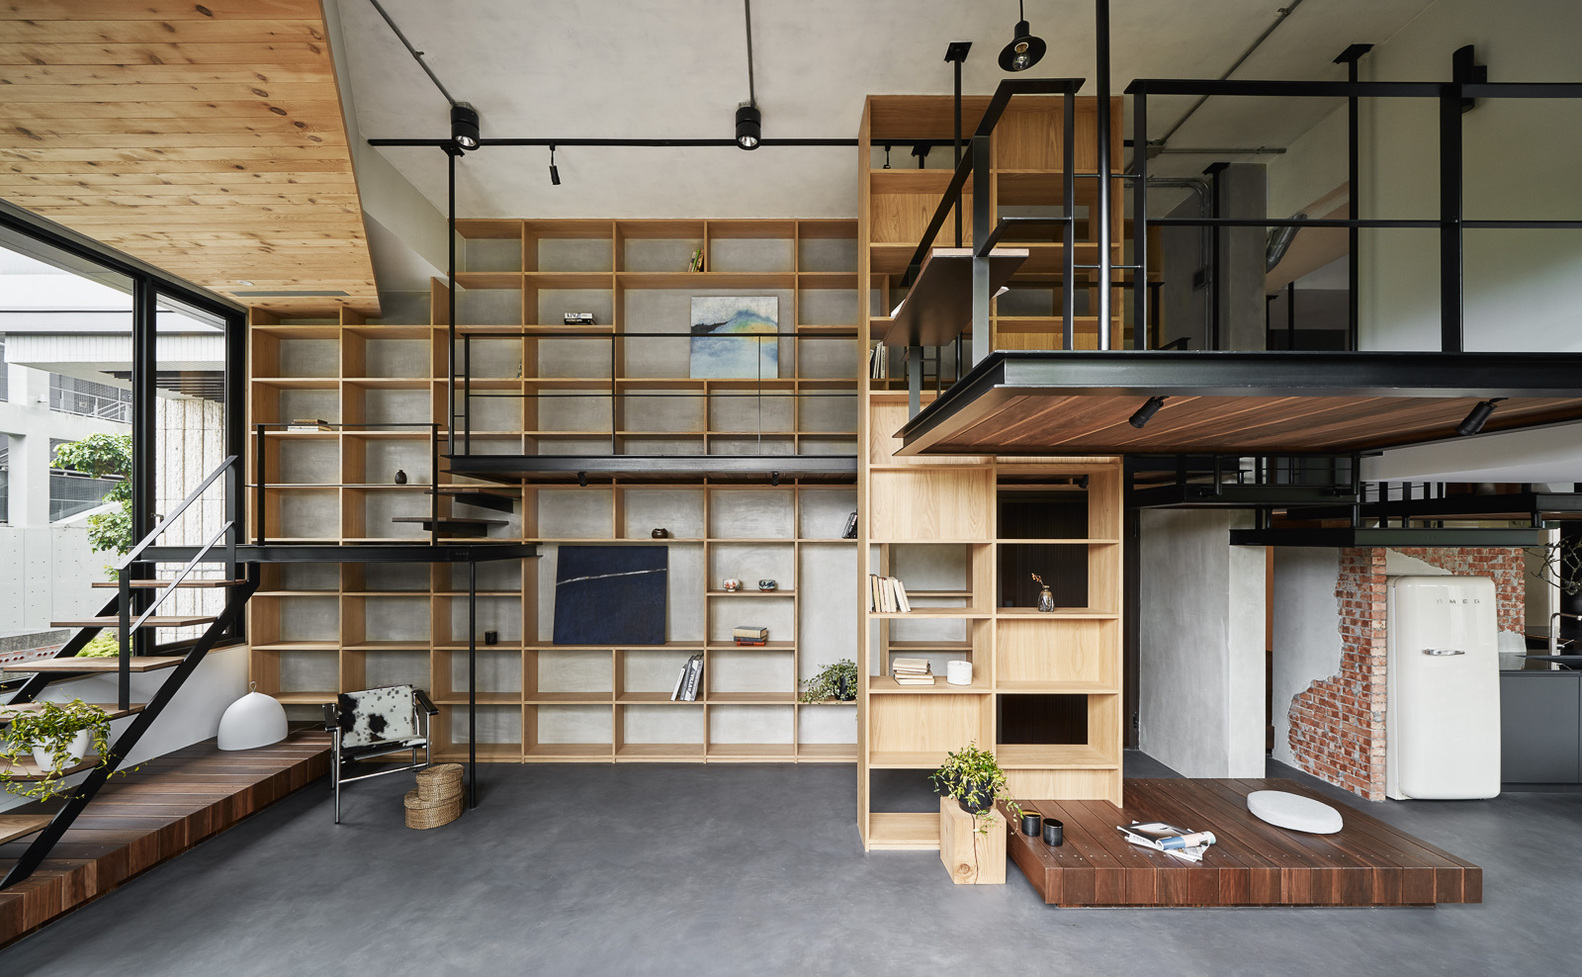 This breezy home feels like an indoor treehouse